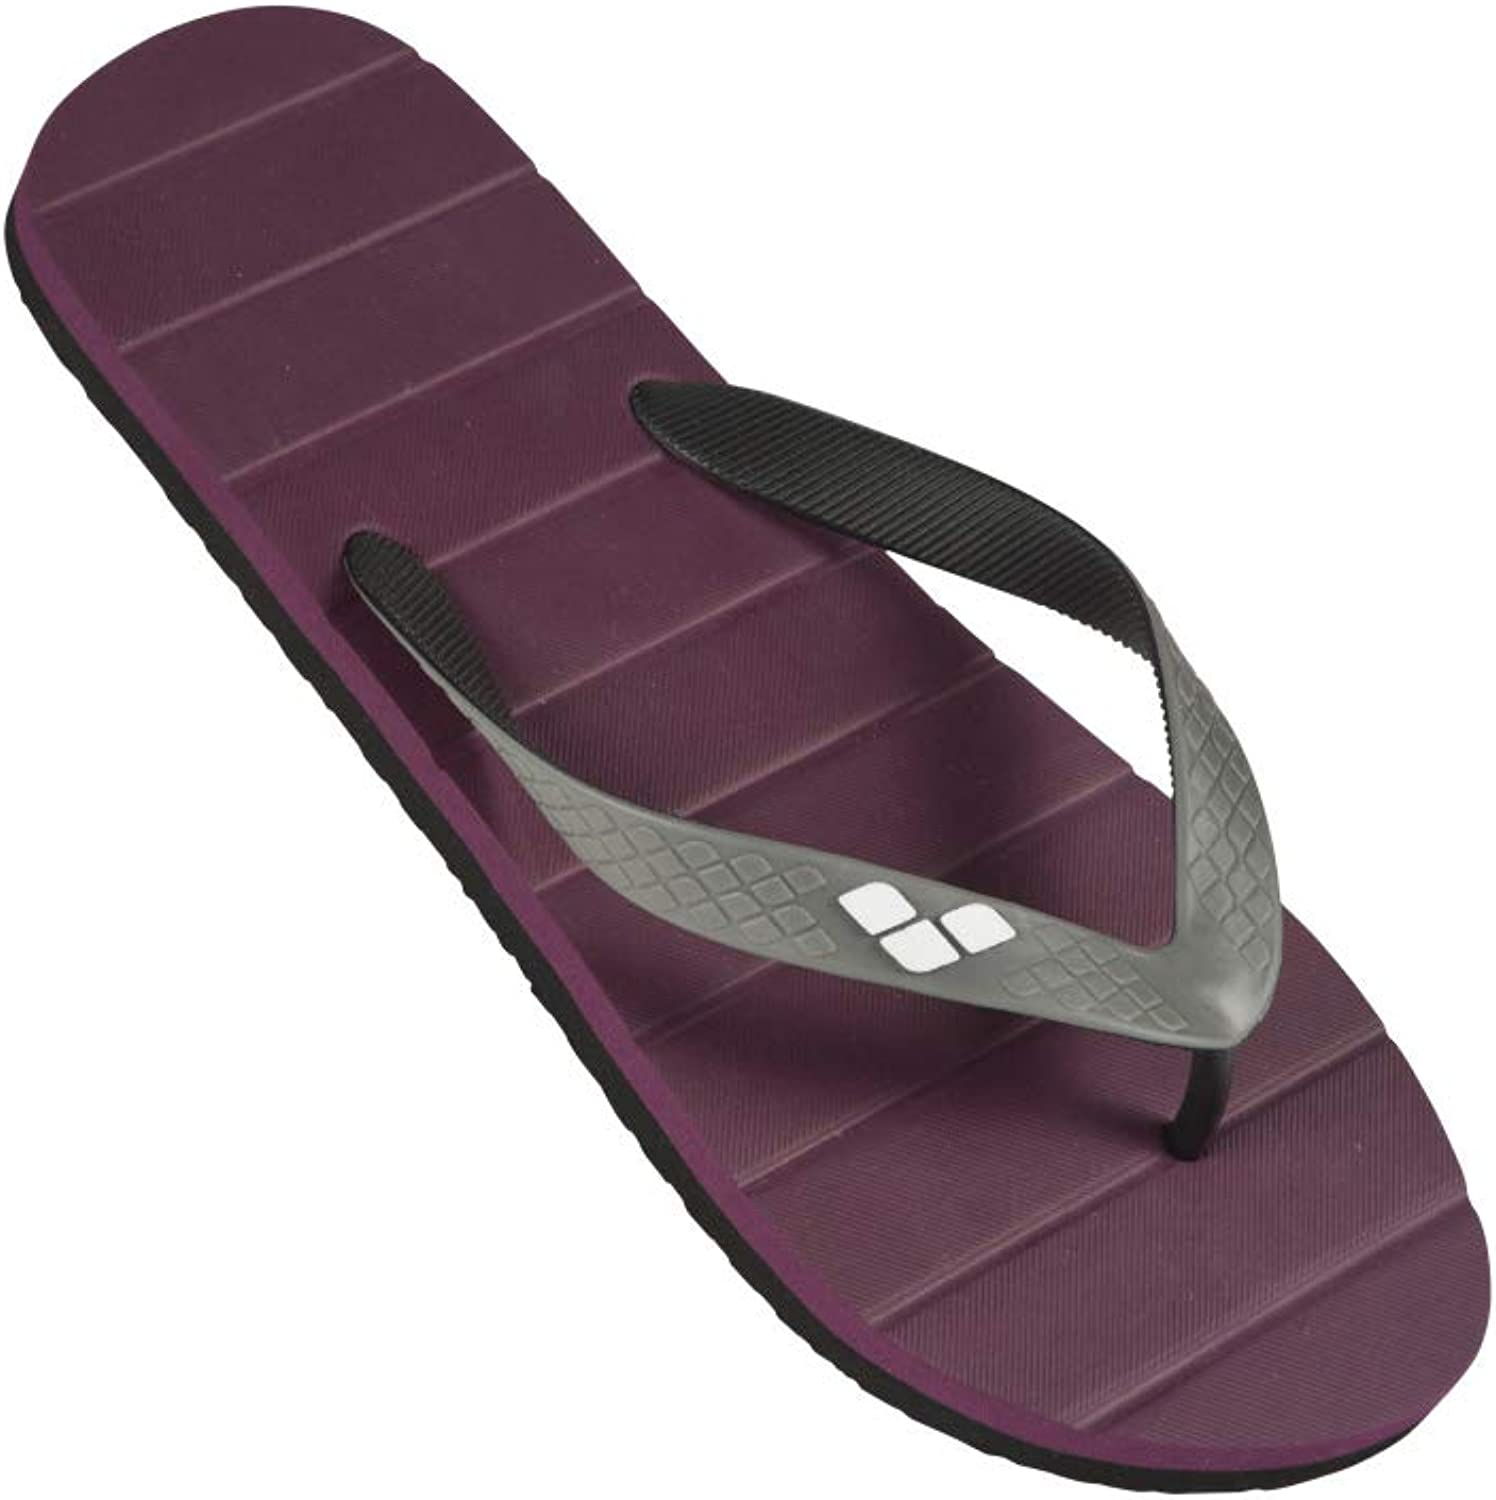 Arena Eddy Men's Pool Flip Flop, Red Wine, 8.5